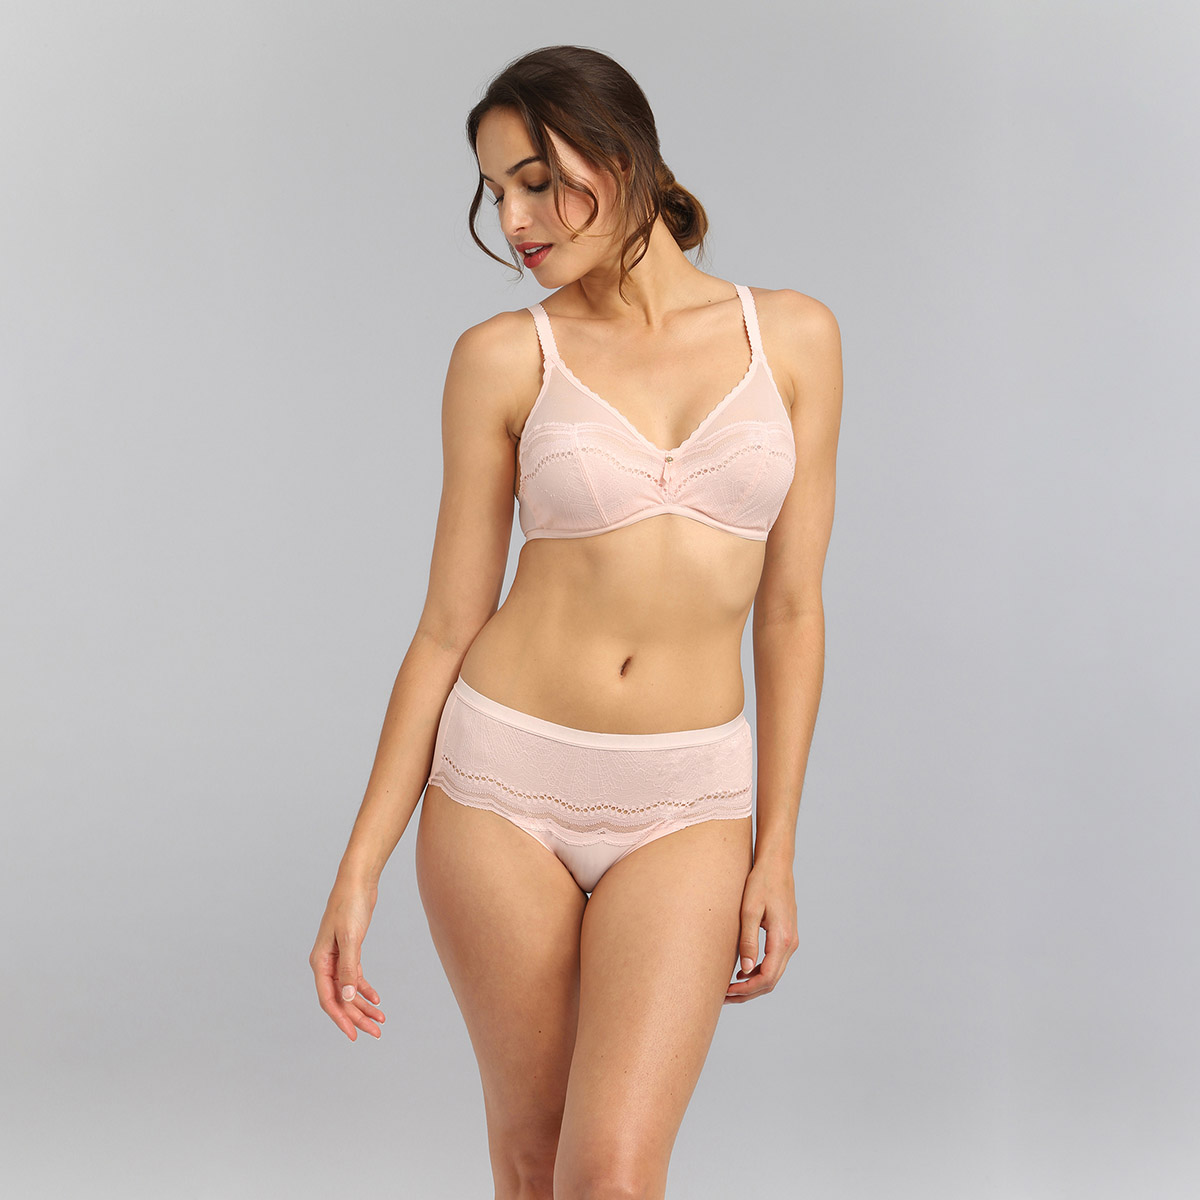 Midi knickers in peach Secret Comfort, , PLAYTEX